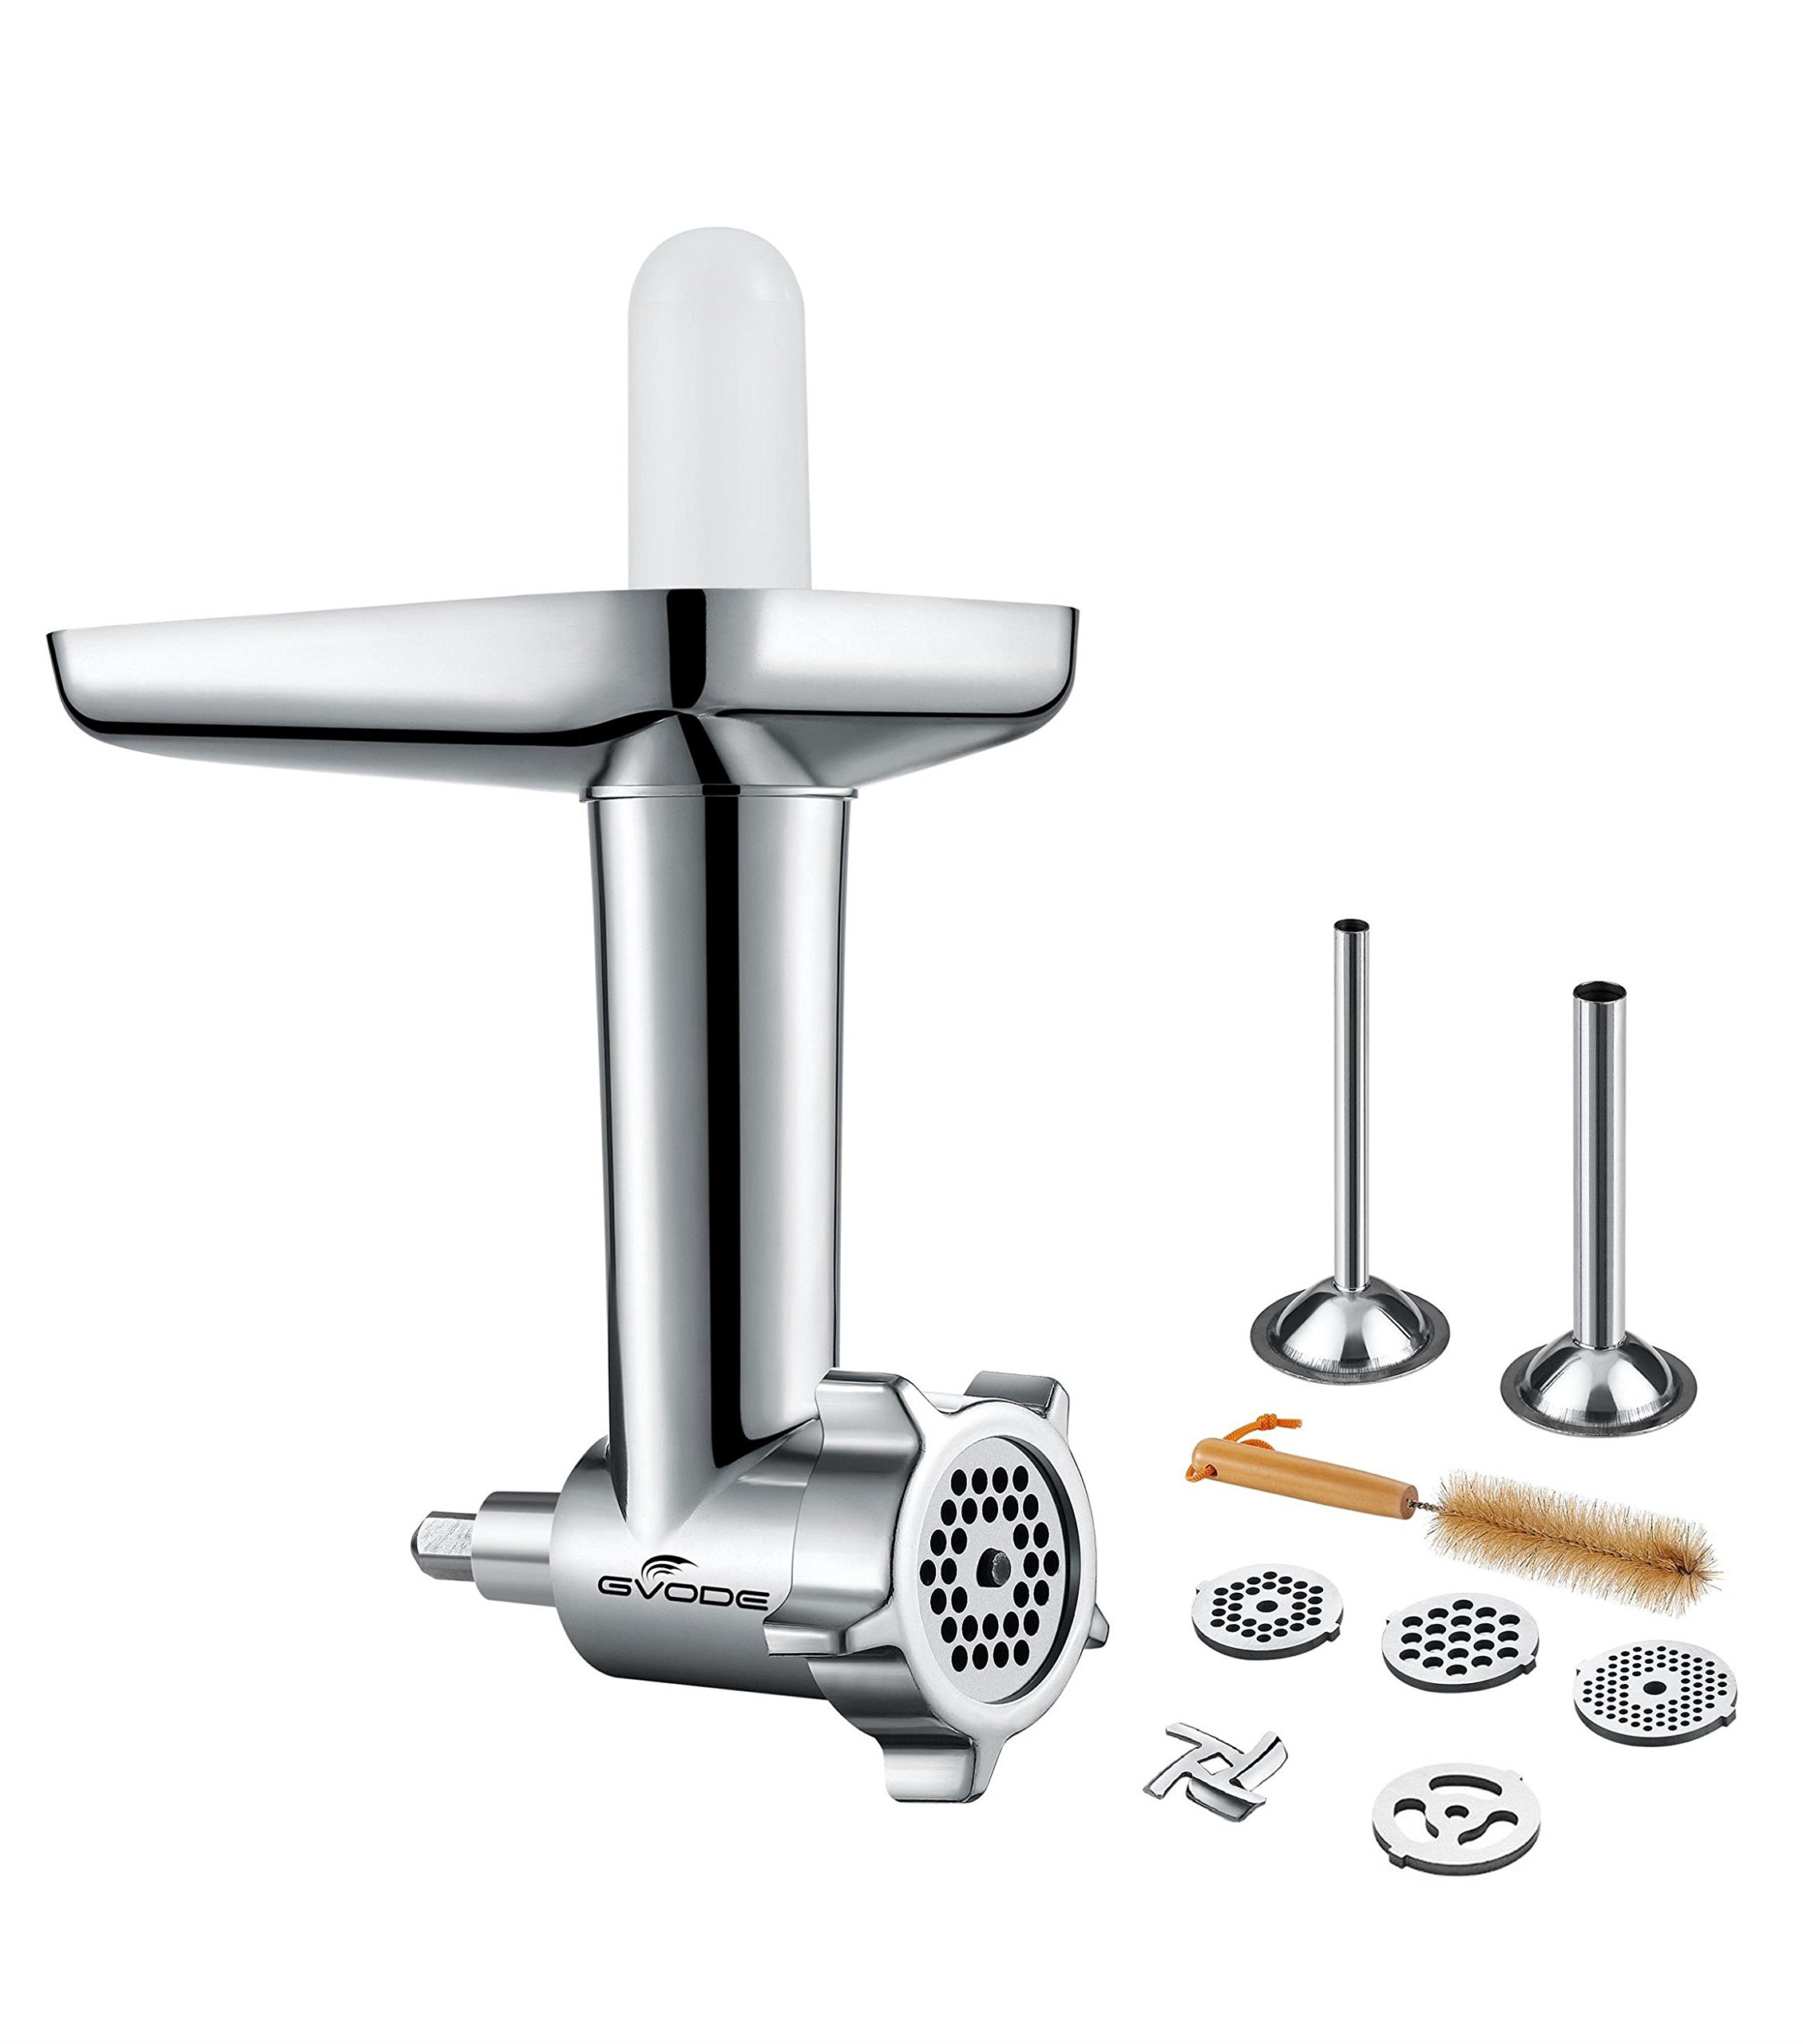 Gvode Kitchen Food Grinder Attachment for KitchenAid Stand Mixers Including Sausage Stuffer